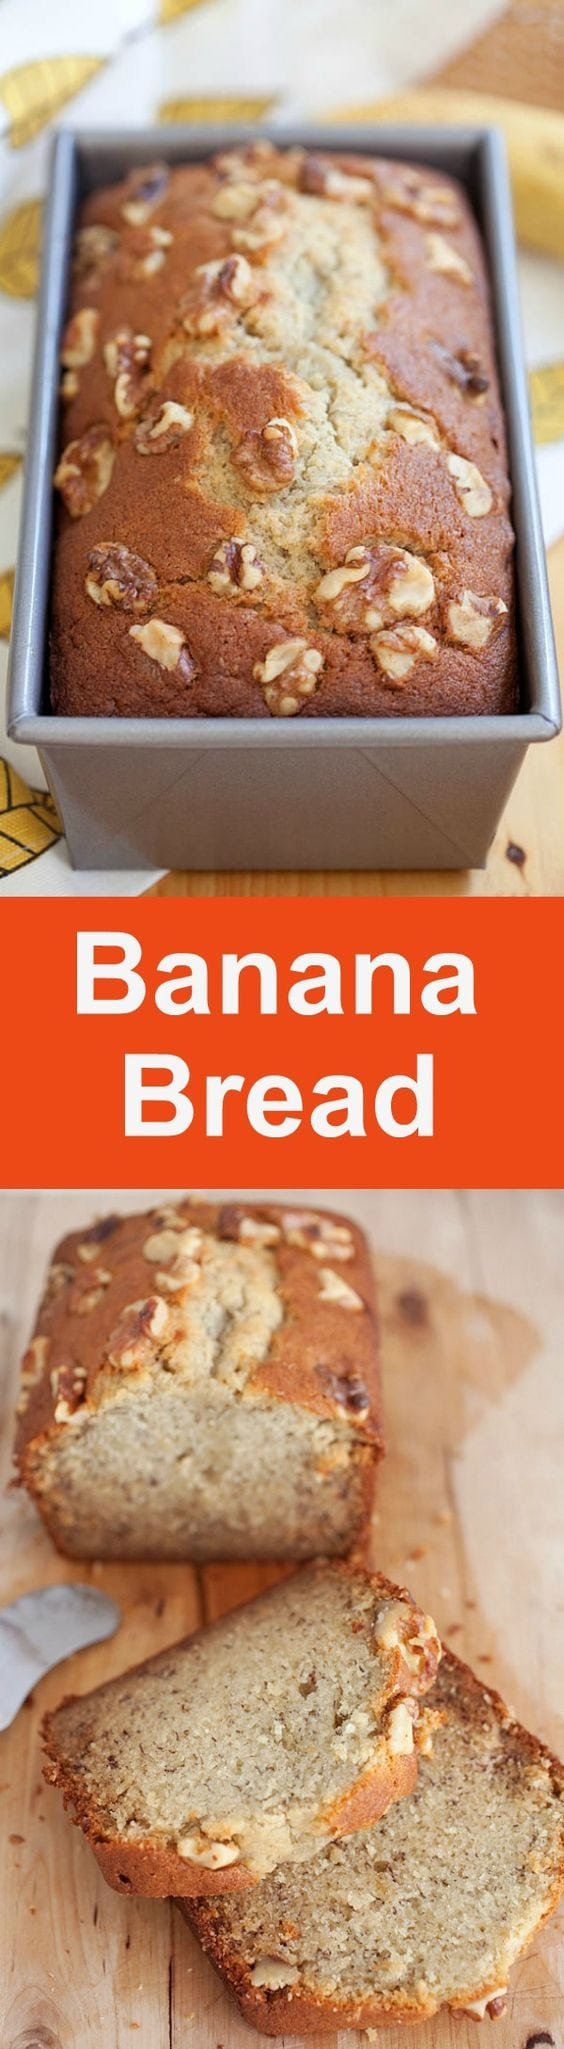 Banana bread – best homemade banana bread recipe ever! Moist, buttery, aromatic and packed with bananas and topped with walnuts | rasamalaysia.com